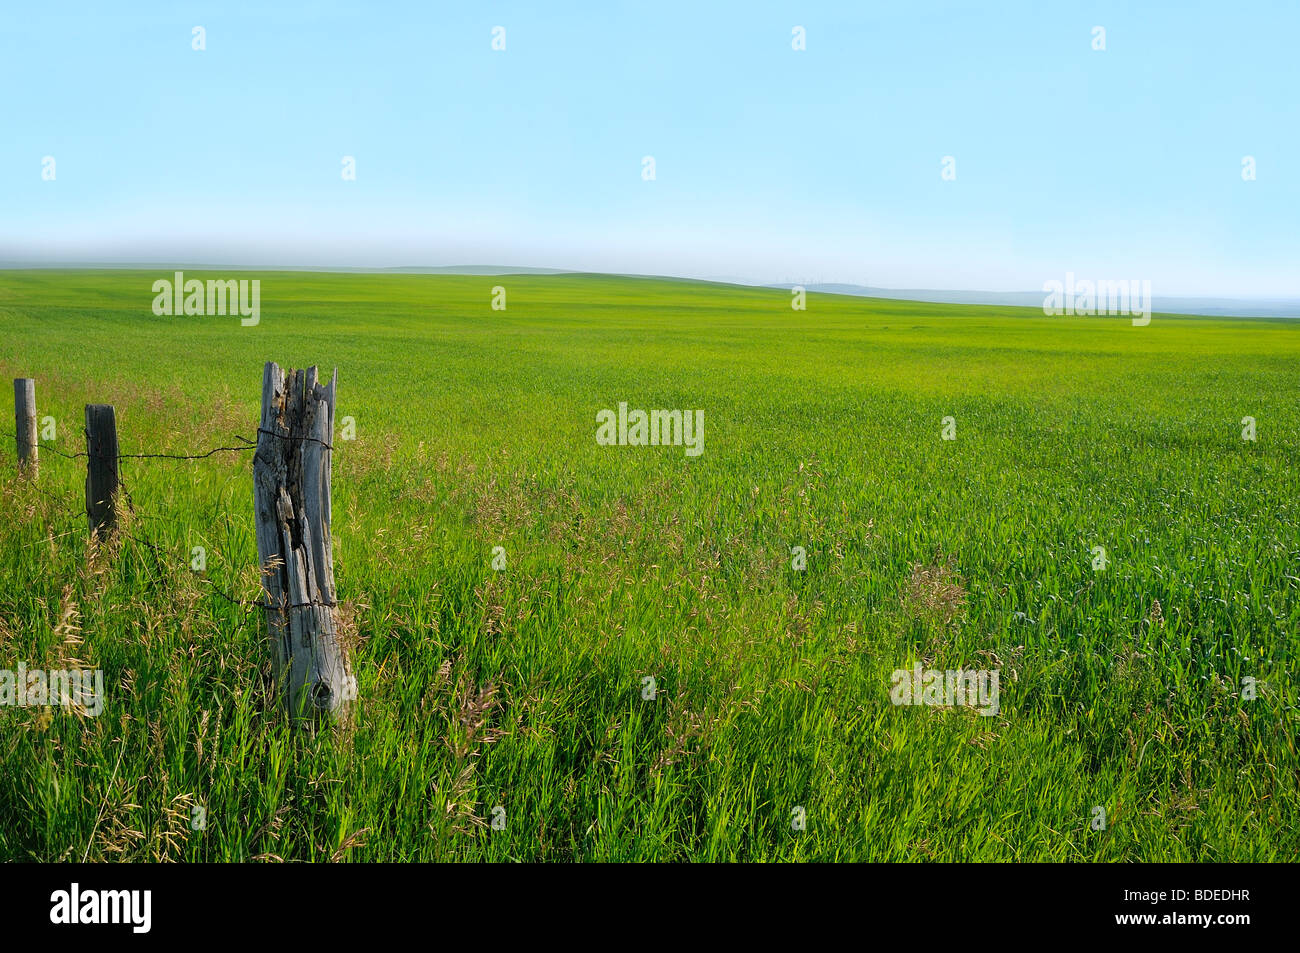 A landscape of the green grassland - Stock Image